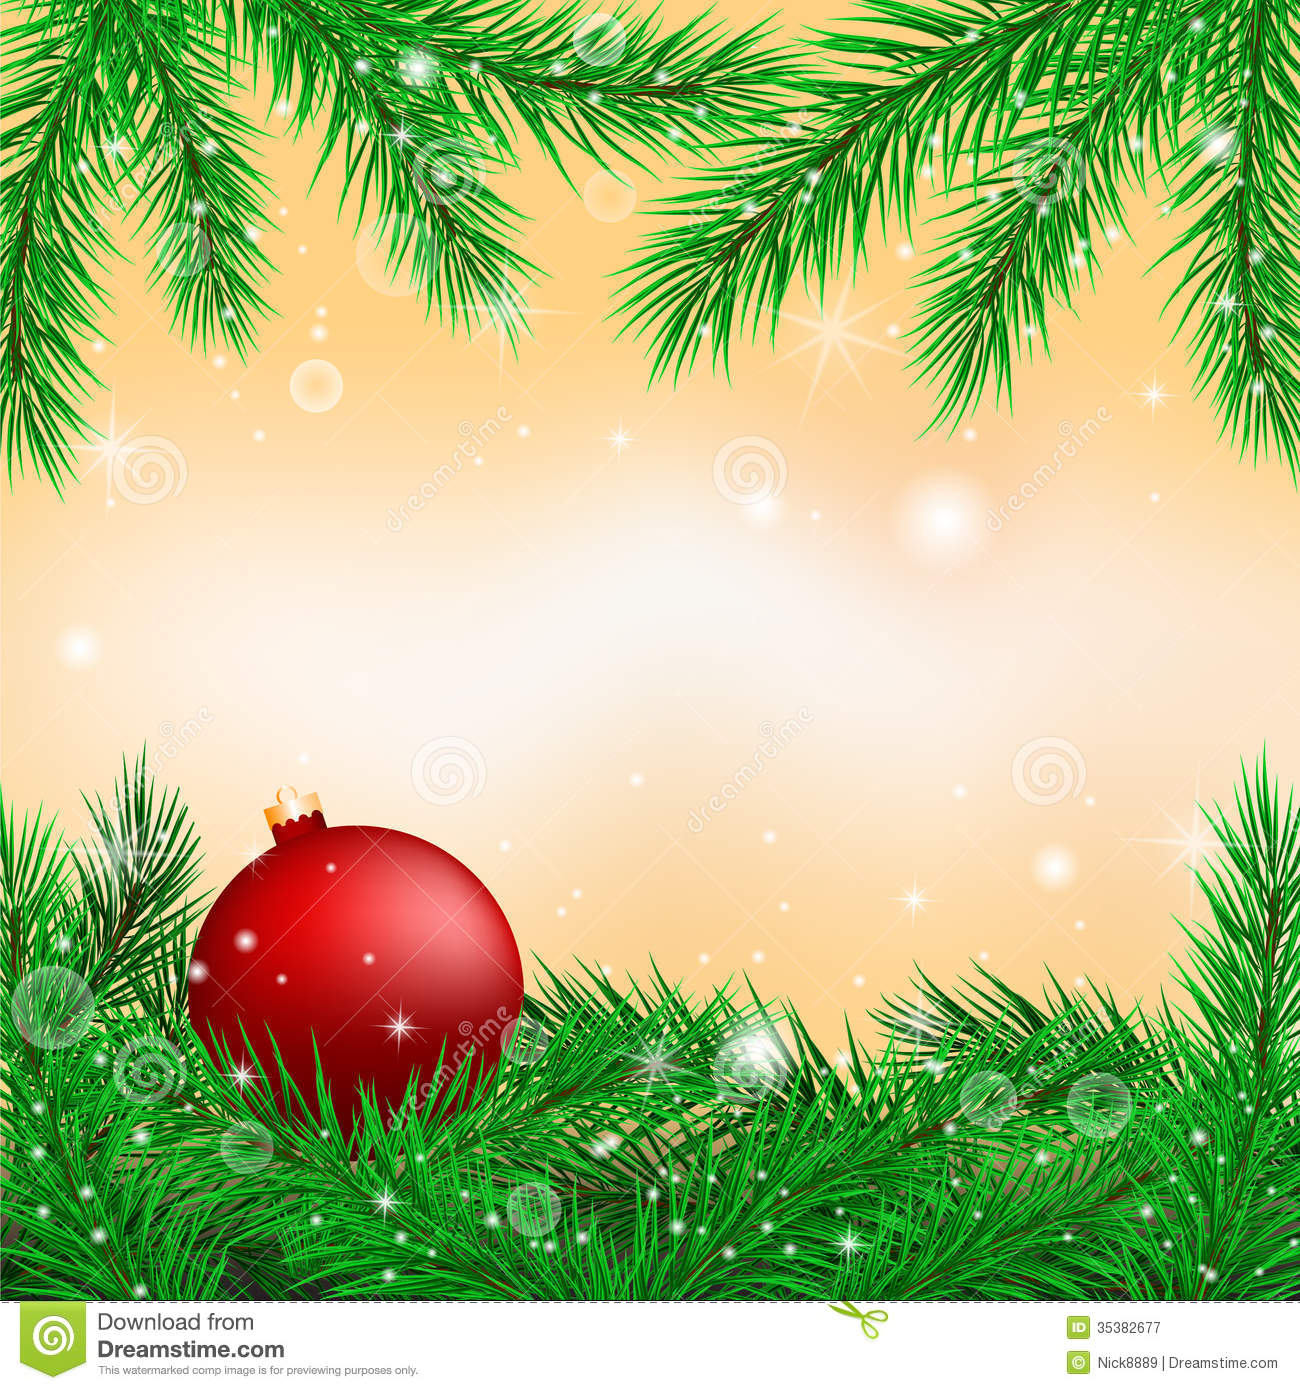 Christmas Graphics Free.Bright Christmas Background Stock Vector Illustration Of